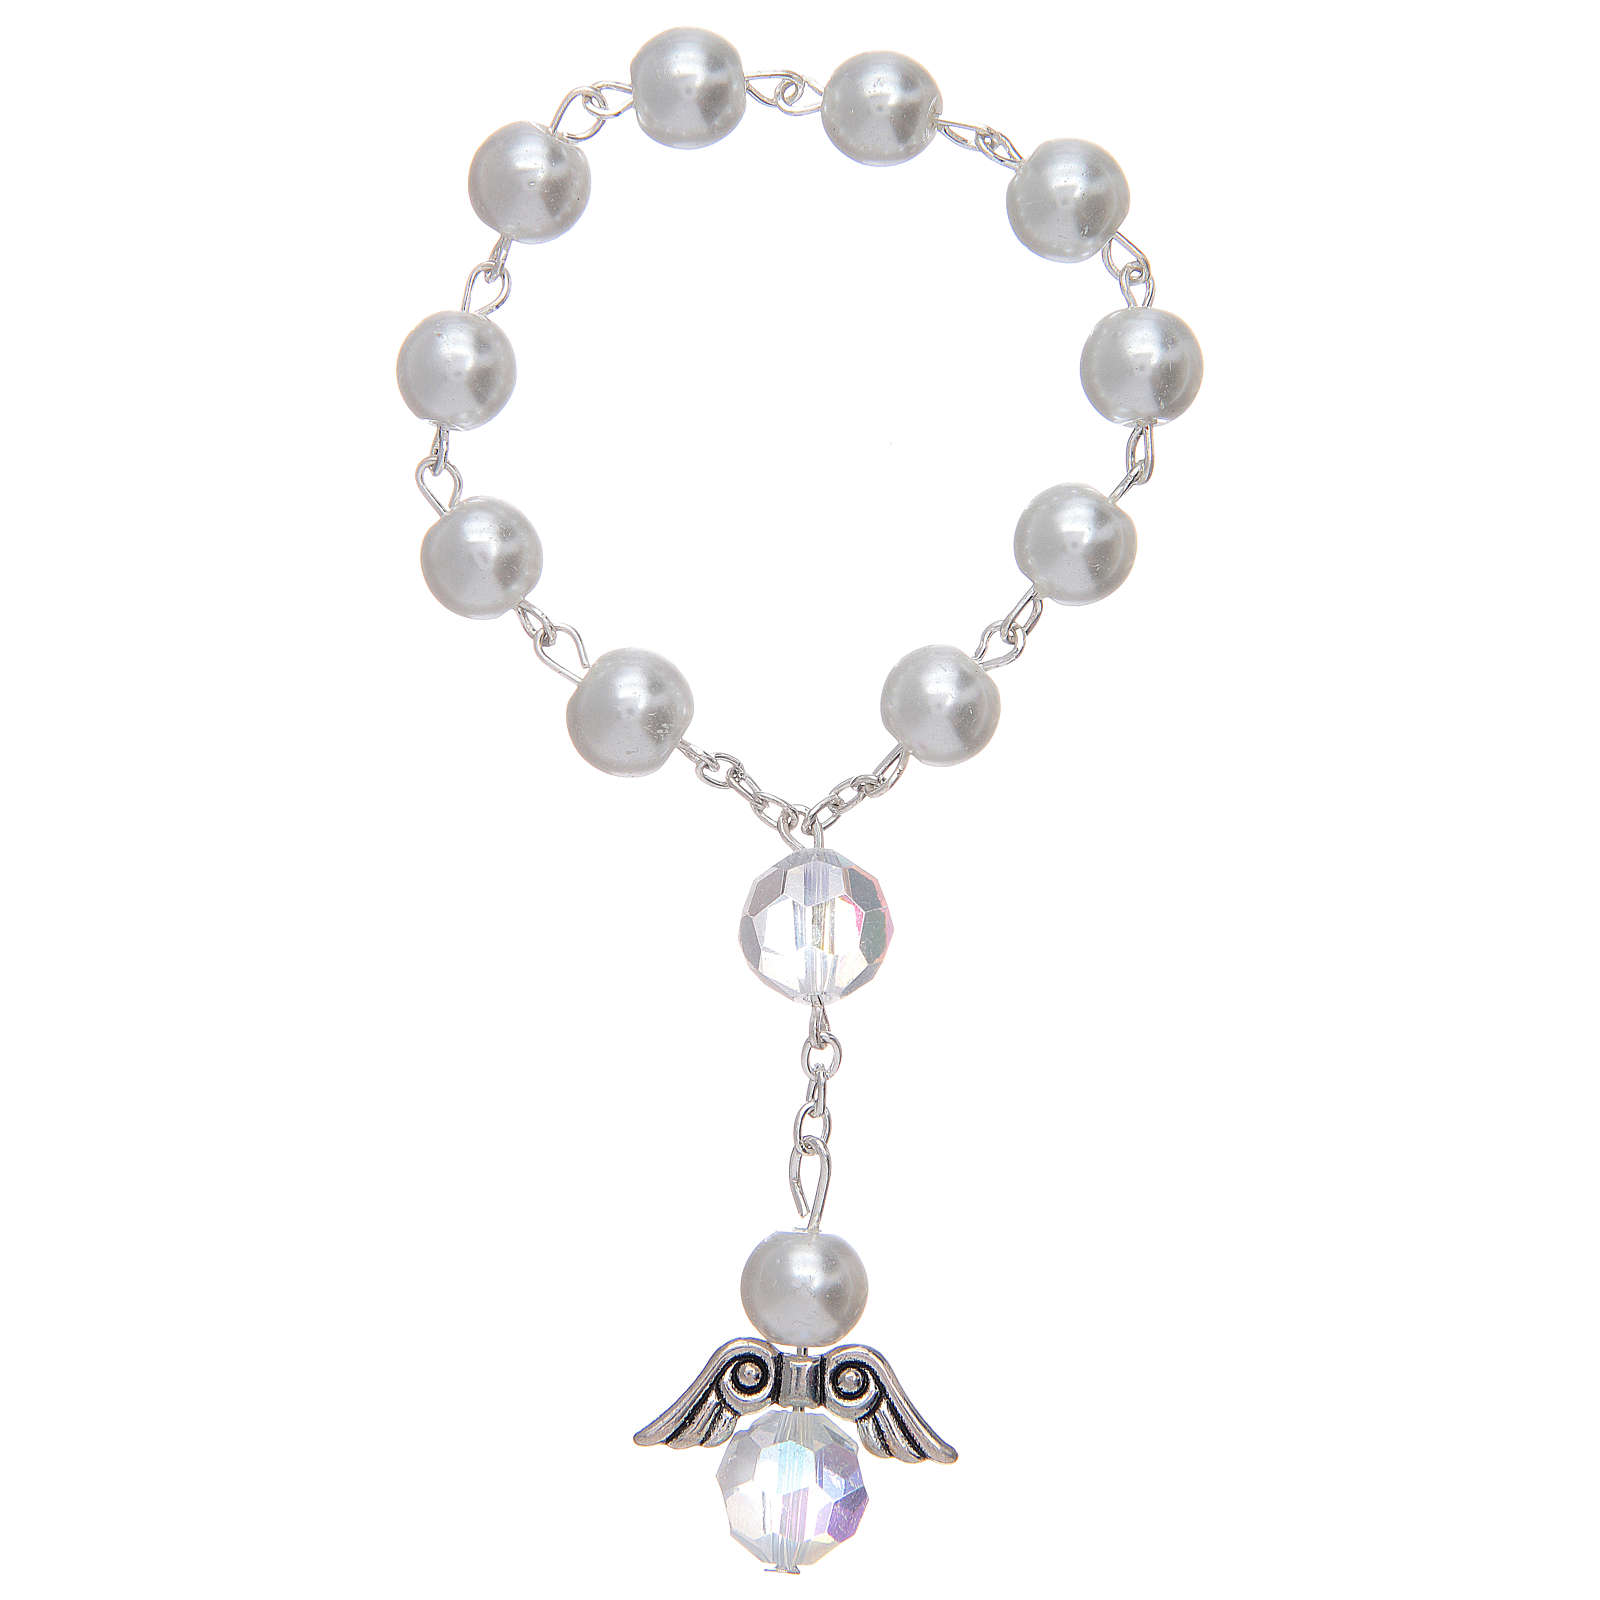 Dozen bracelet with grains made in pearl imitation and pendant, assorted colours 4